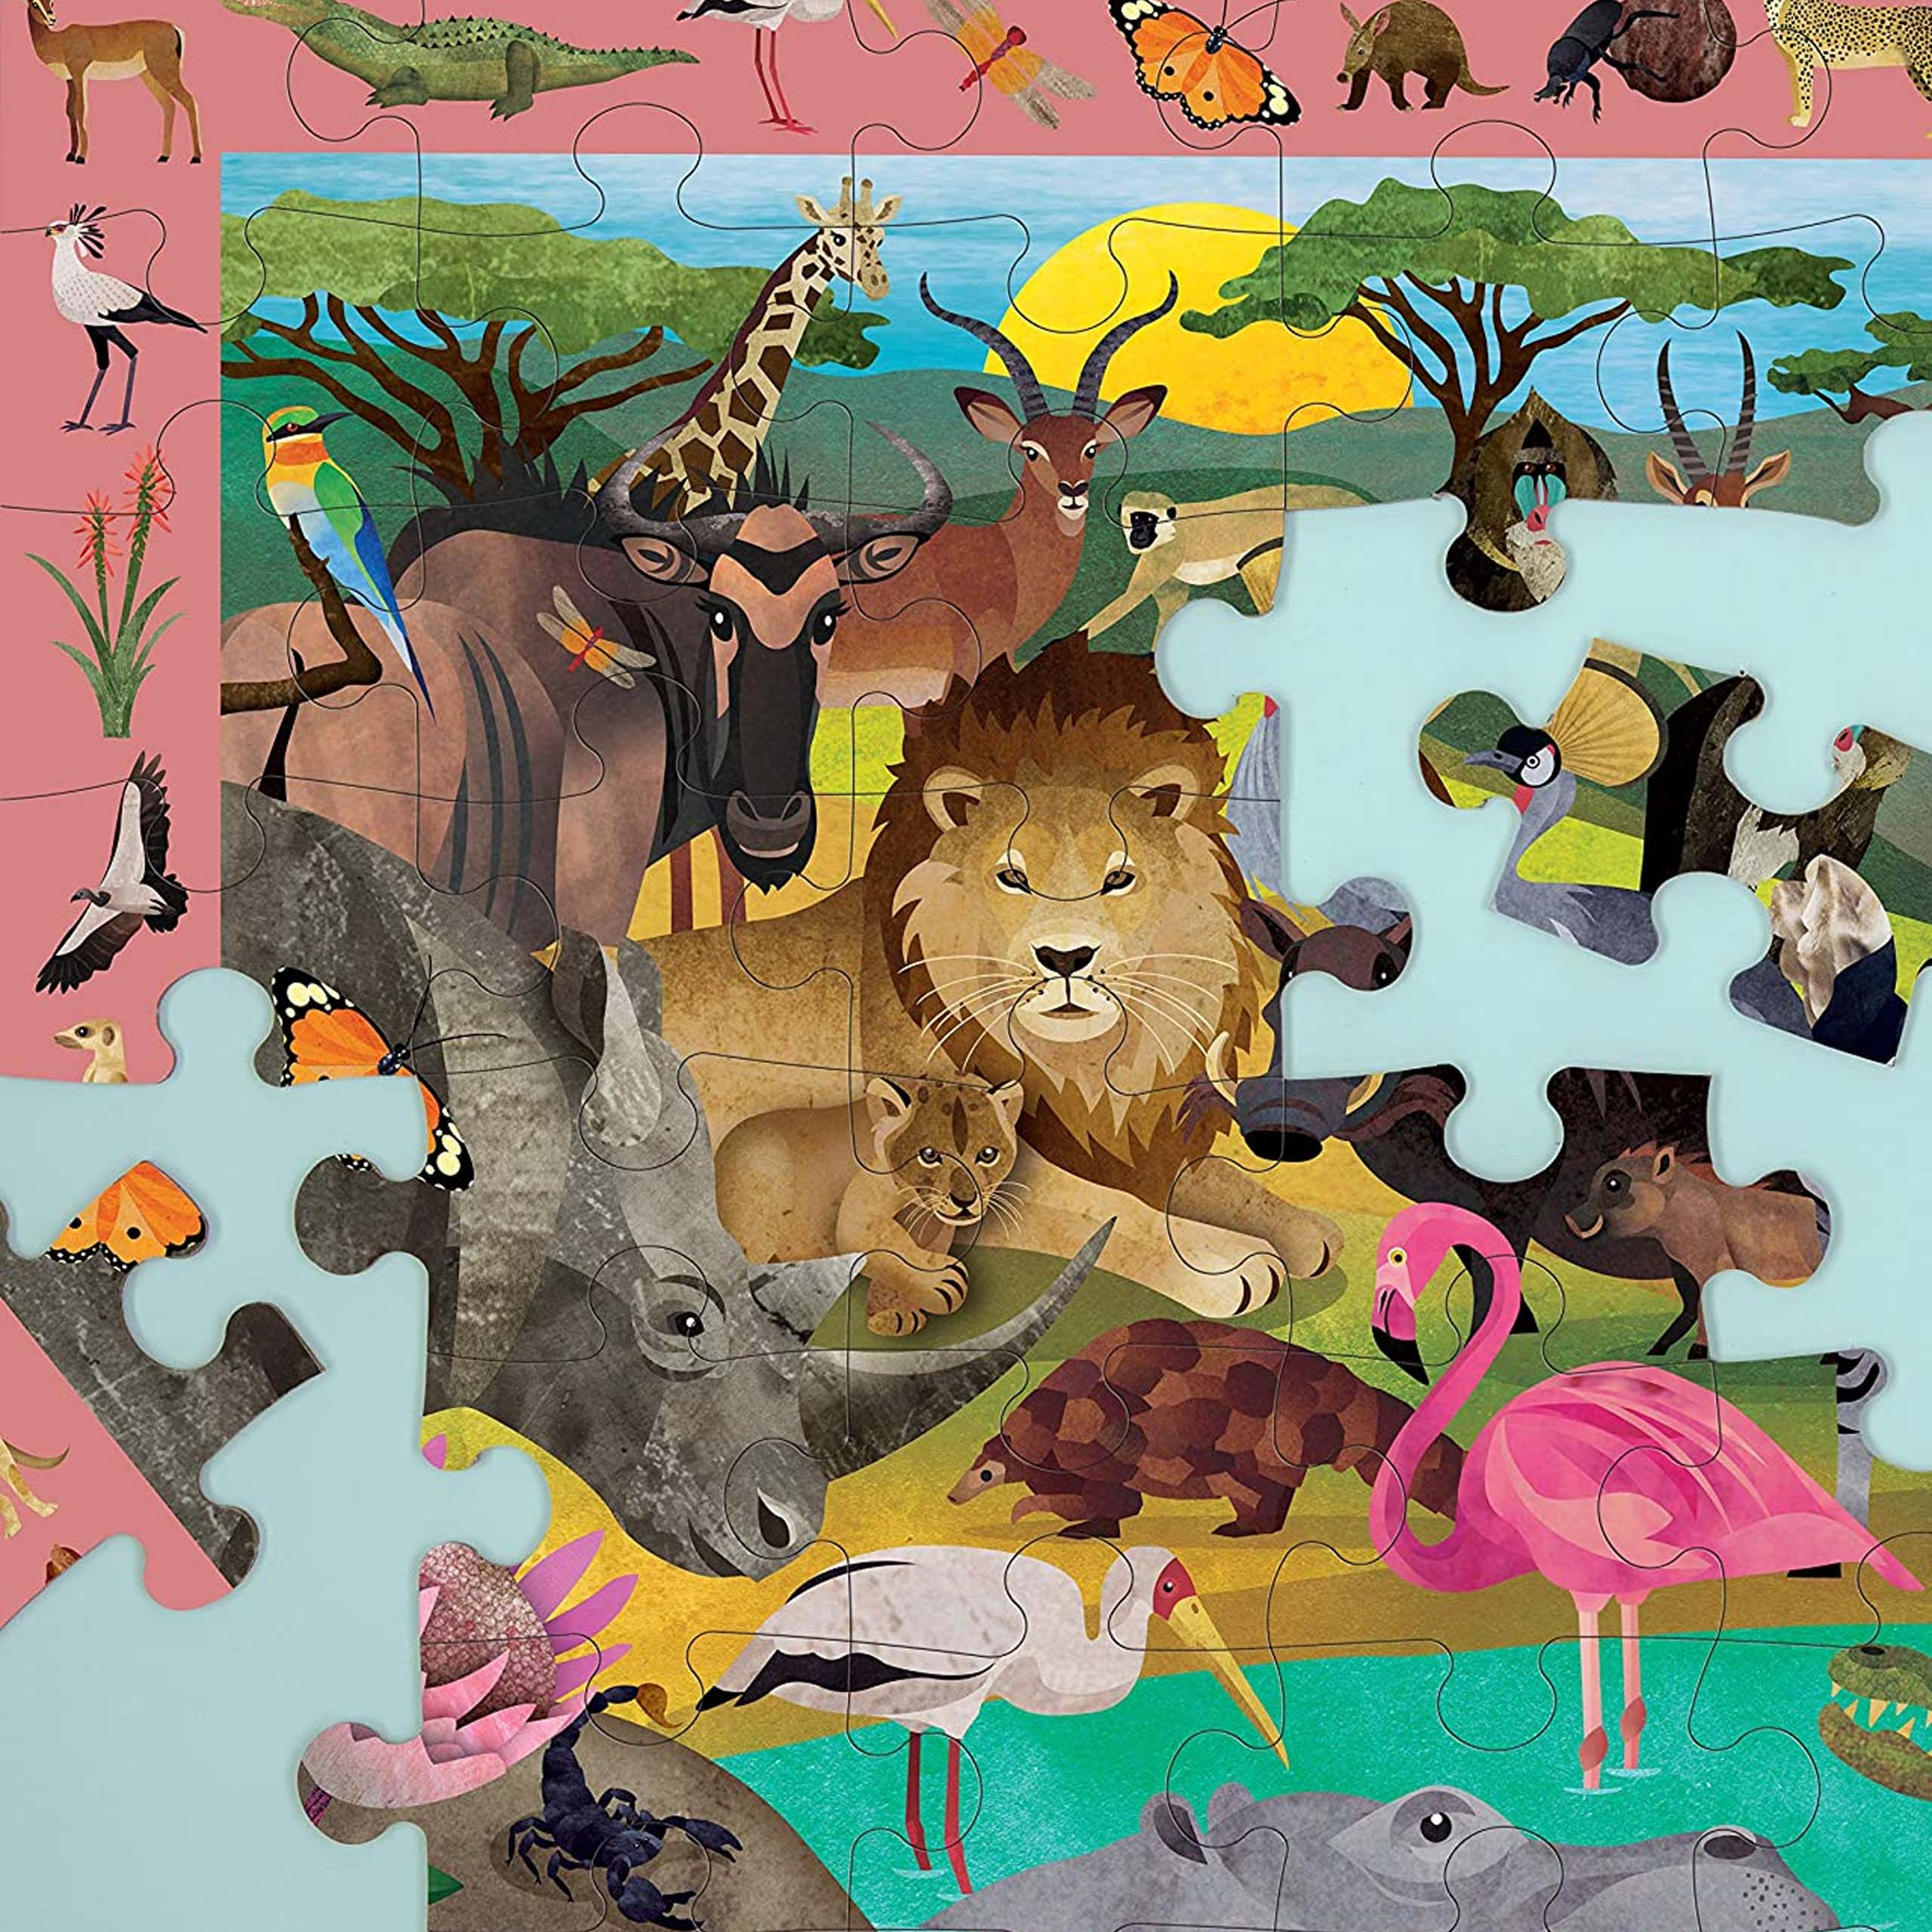 Safari Search And Find Jigsaw Puzzle, 64 Pieces